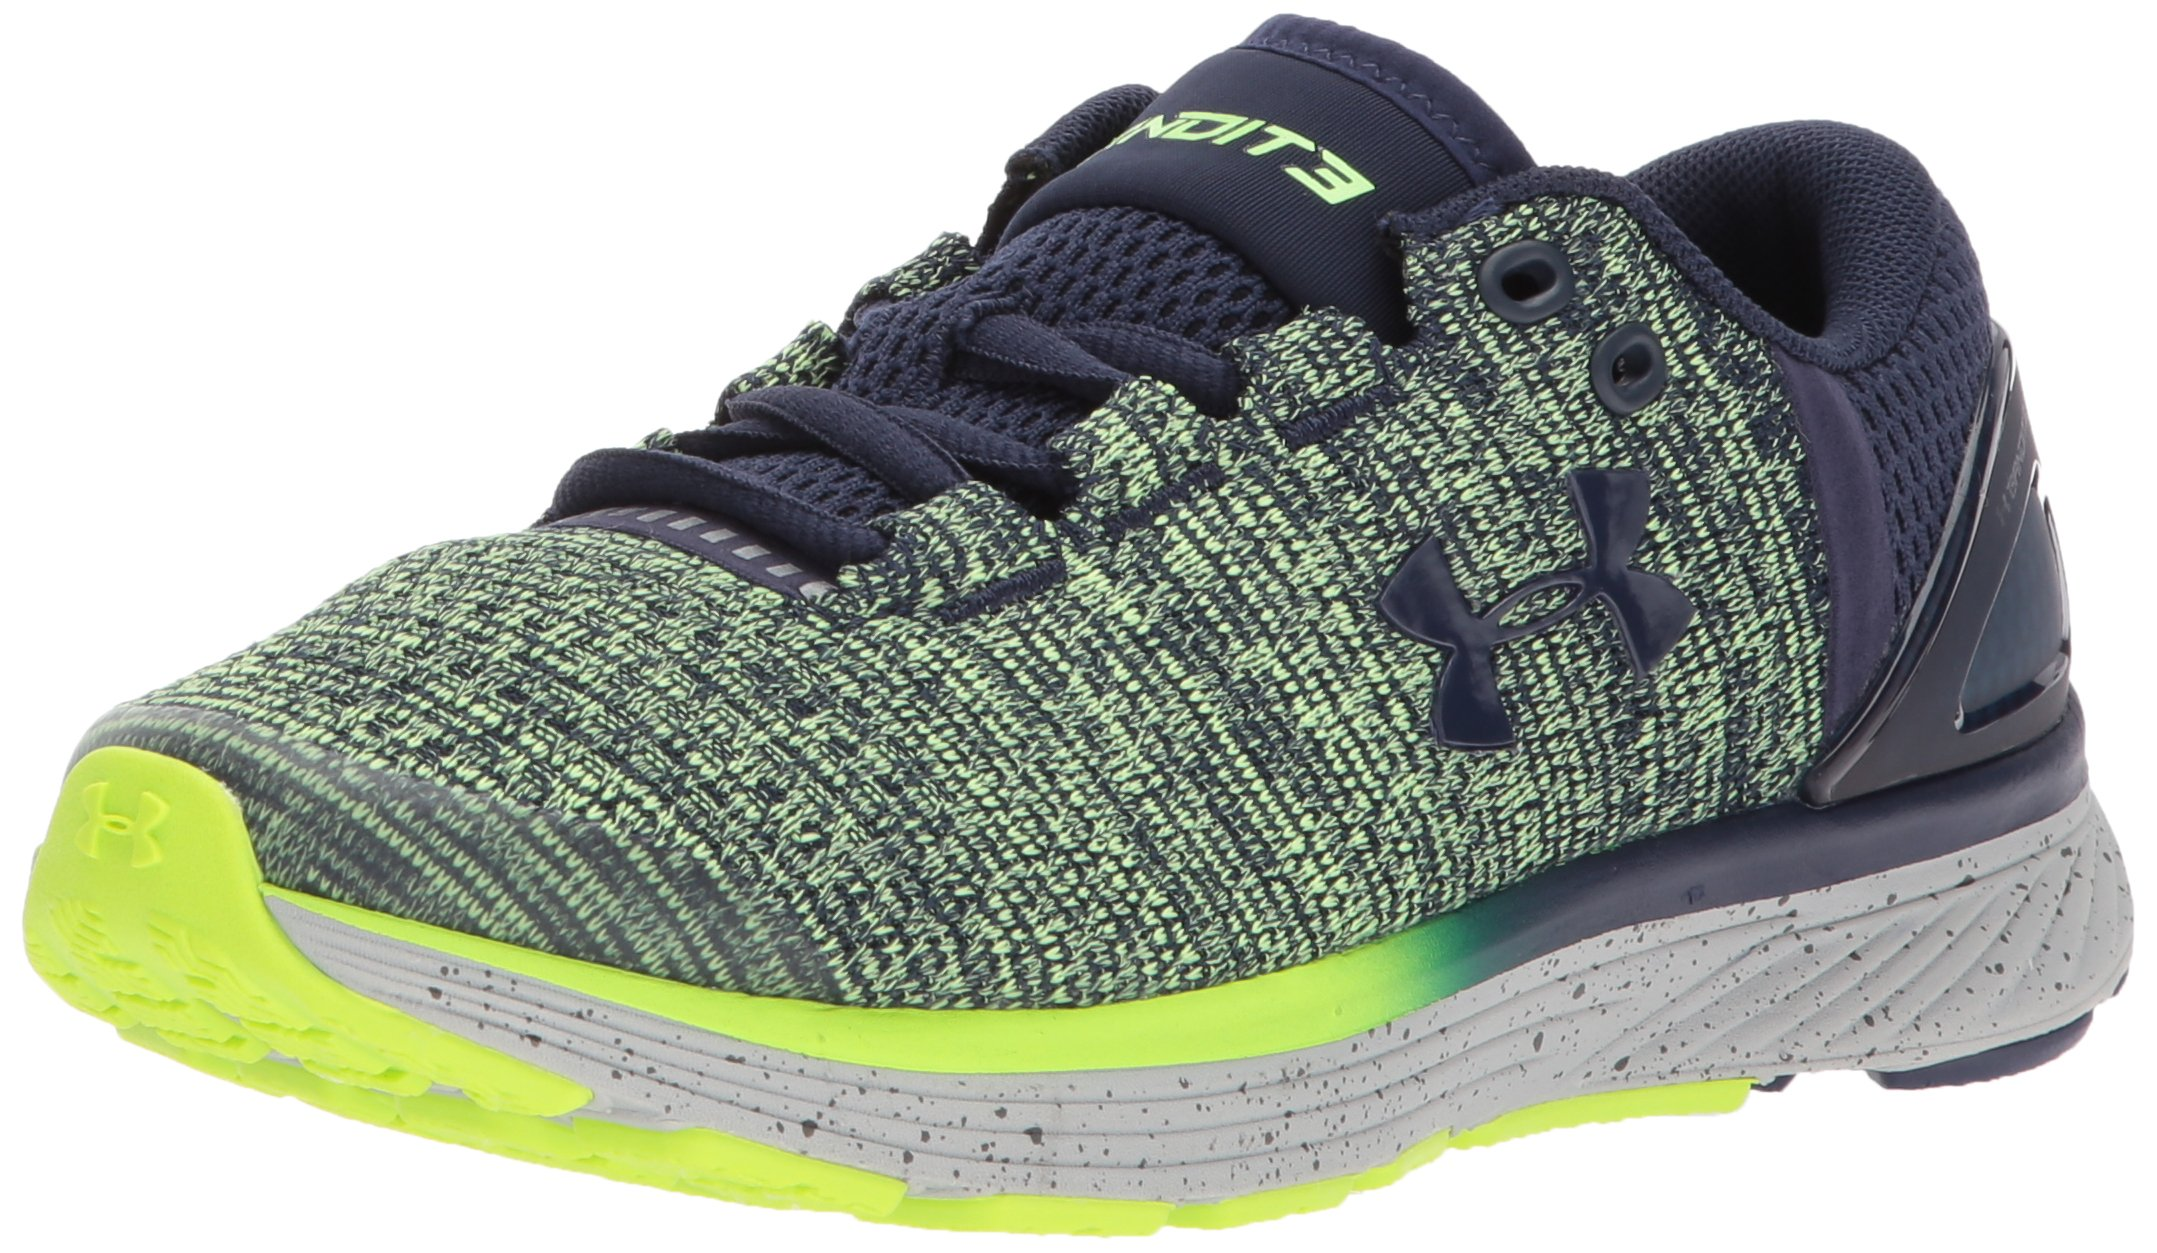 bc0180aee8 Under Armour Boys' Grade School Charged Bandit 3, Midnight Navy  (411)/Quirky Lime, 4.5